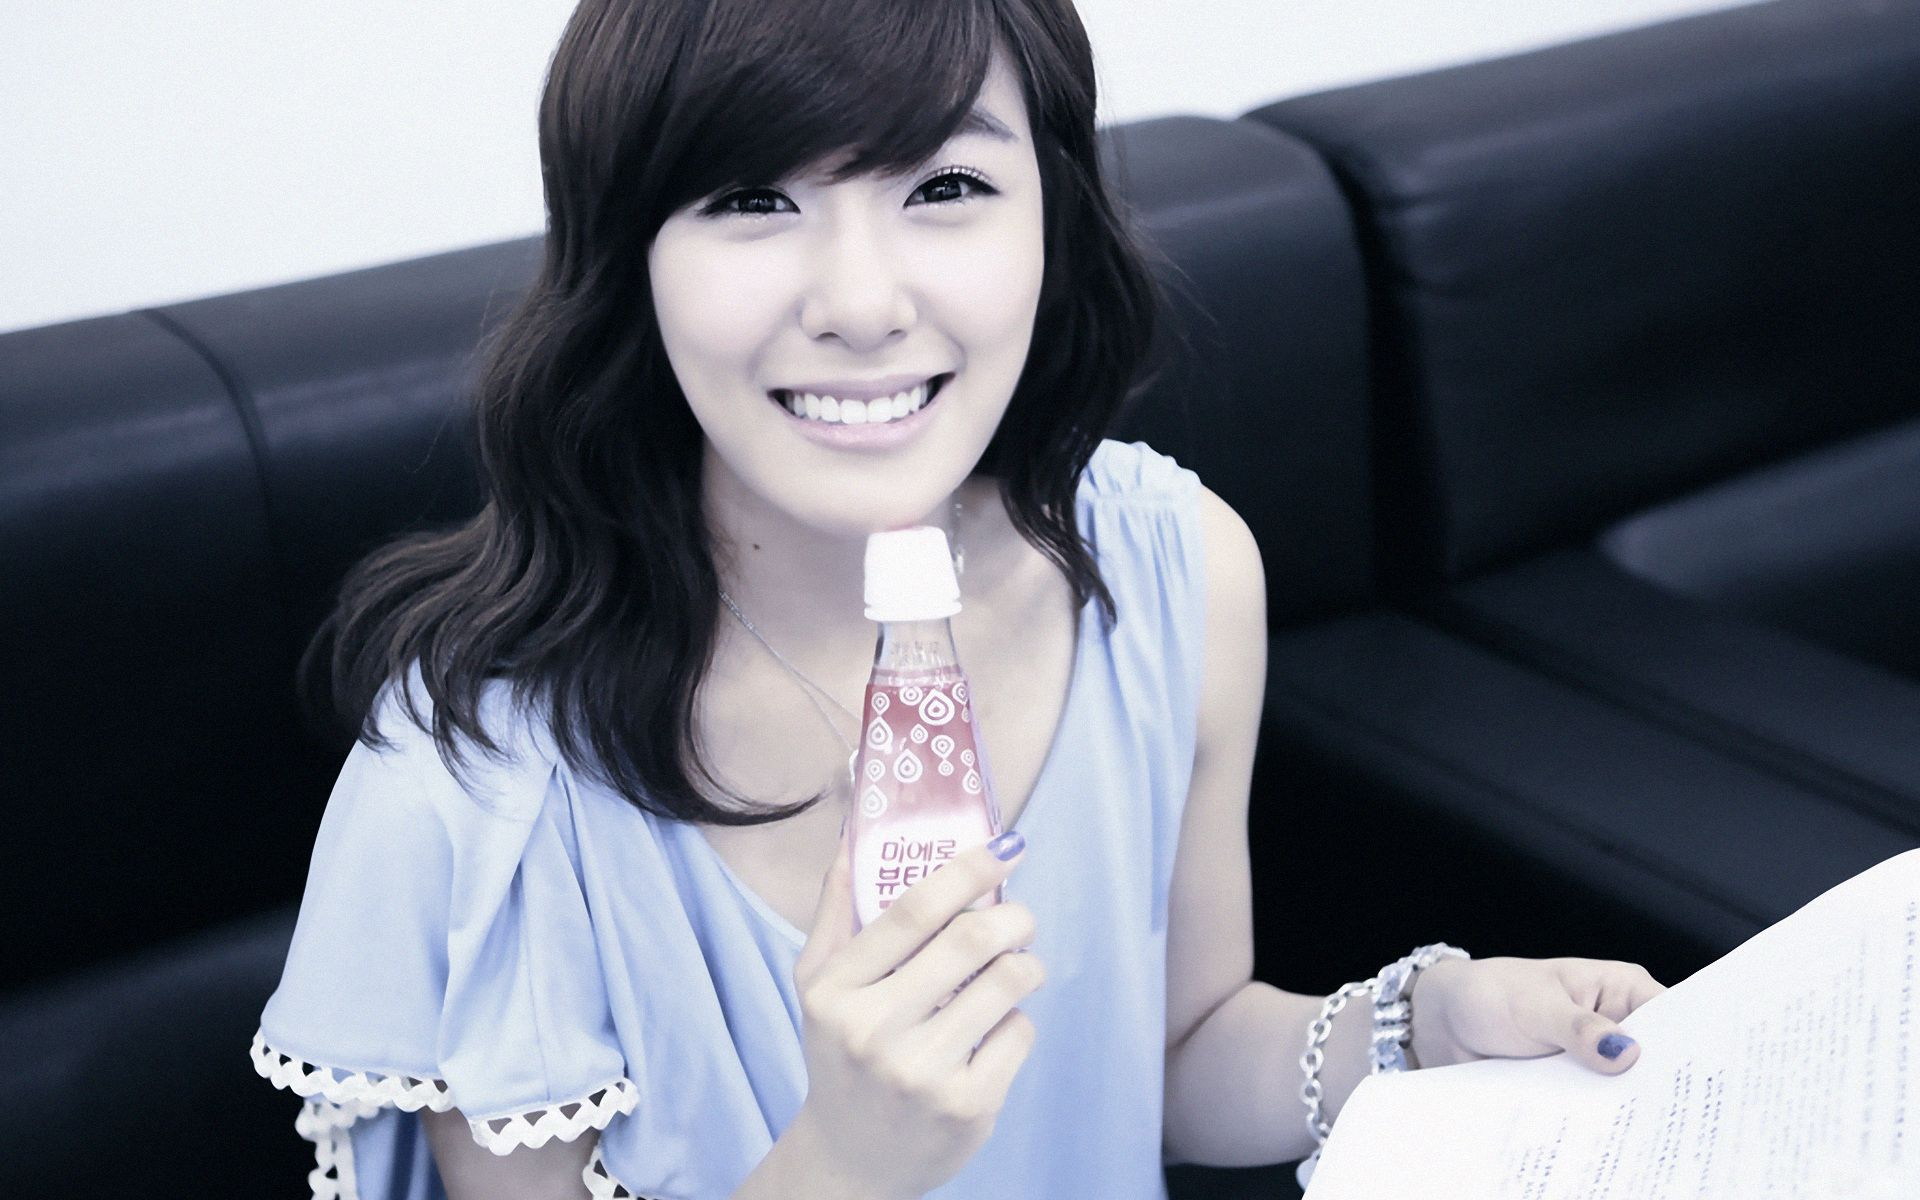 This is a picture of Tiffany Hwang from the Kpop girl band ...